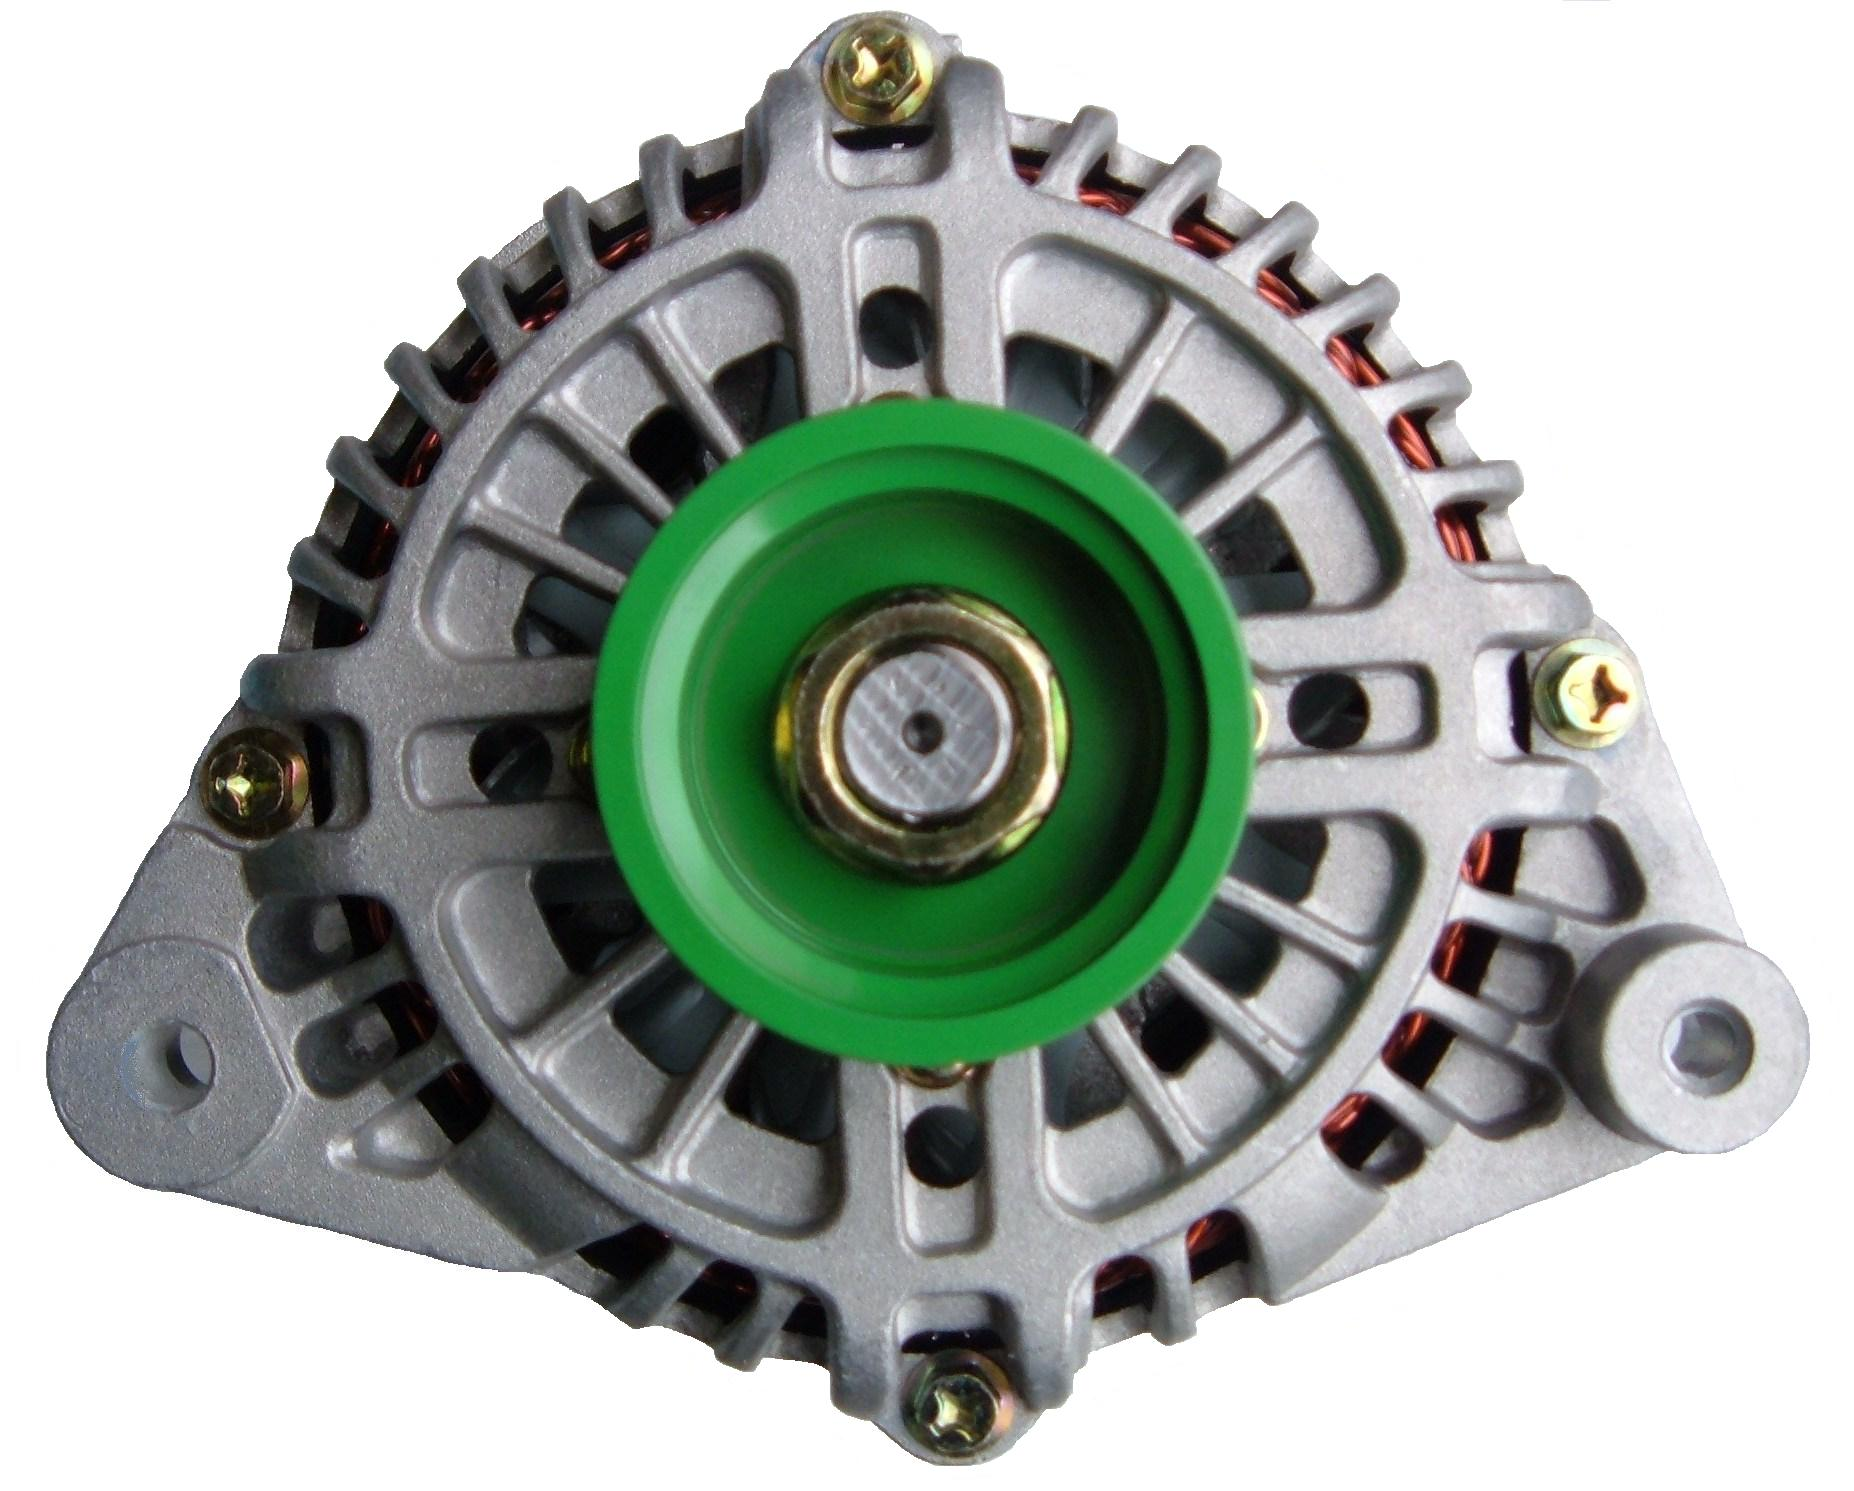 Nissan Hardbody High Output Alternator by Mean Green 1986 - 1995 3.0L V6, 180 Amp